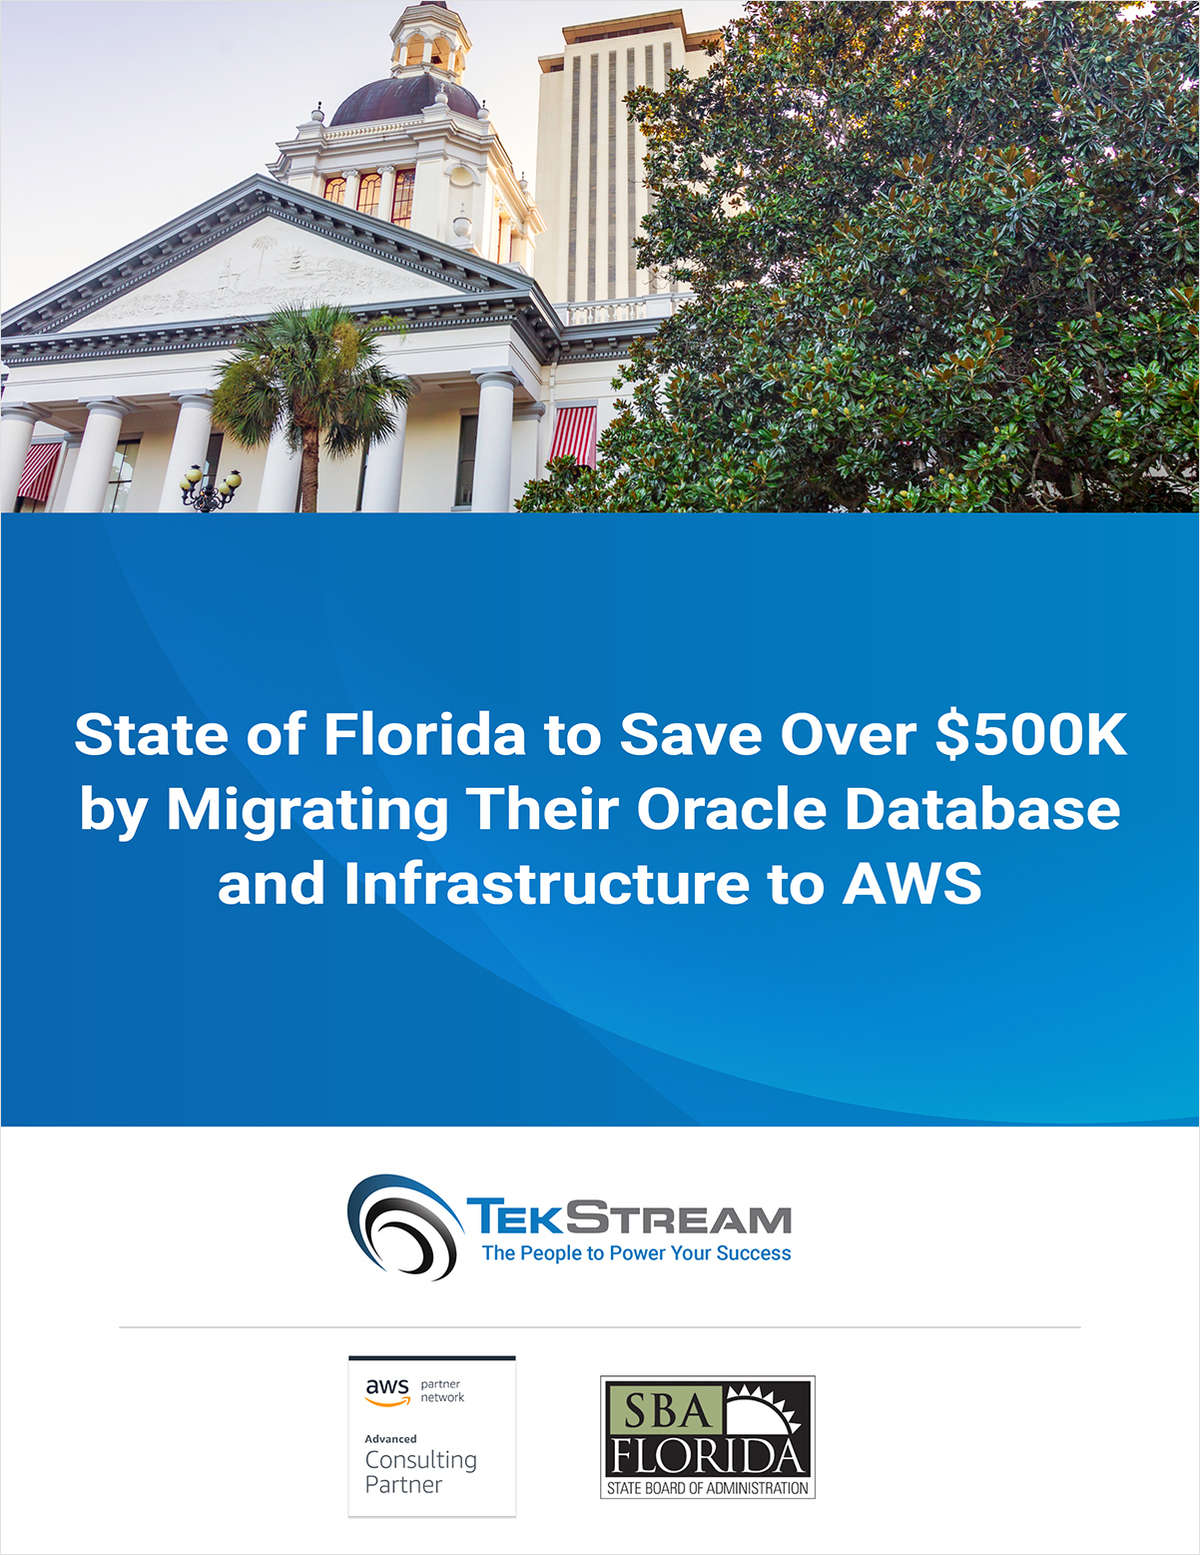 State of Florida Saves Big by Migrating to AWS